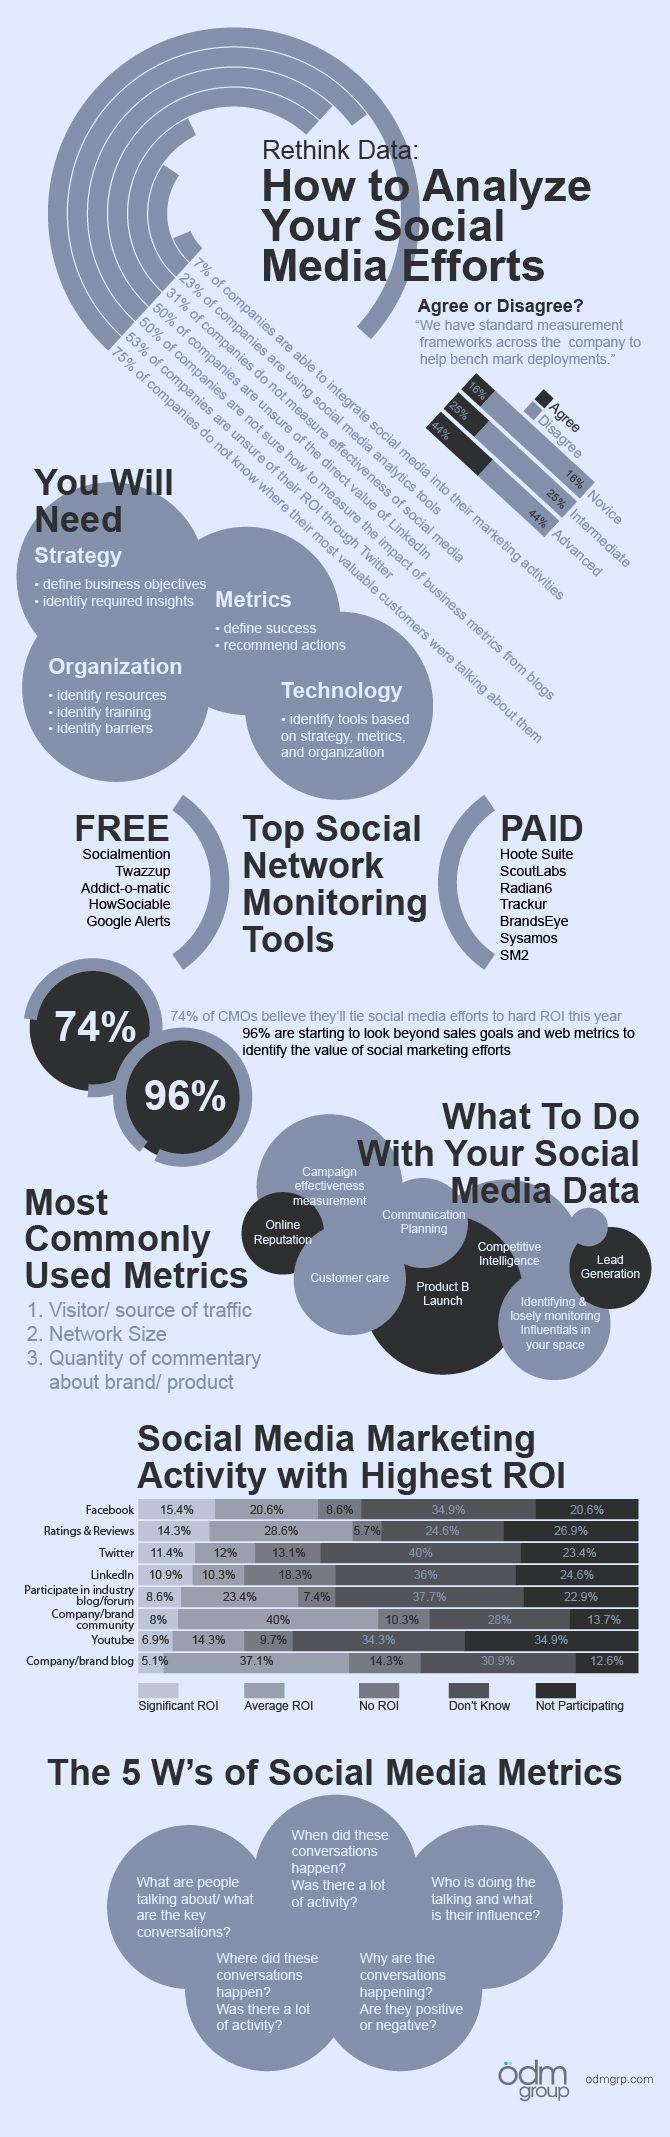 How to Analyze Your Social Media EffortsAnalyzing, Infographic Socialmedia, Socialmedia Effort, Socialmedia Marketing, Media Engagement, Social Media, Effort Infographicsocialmedia, Analytics, Medium